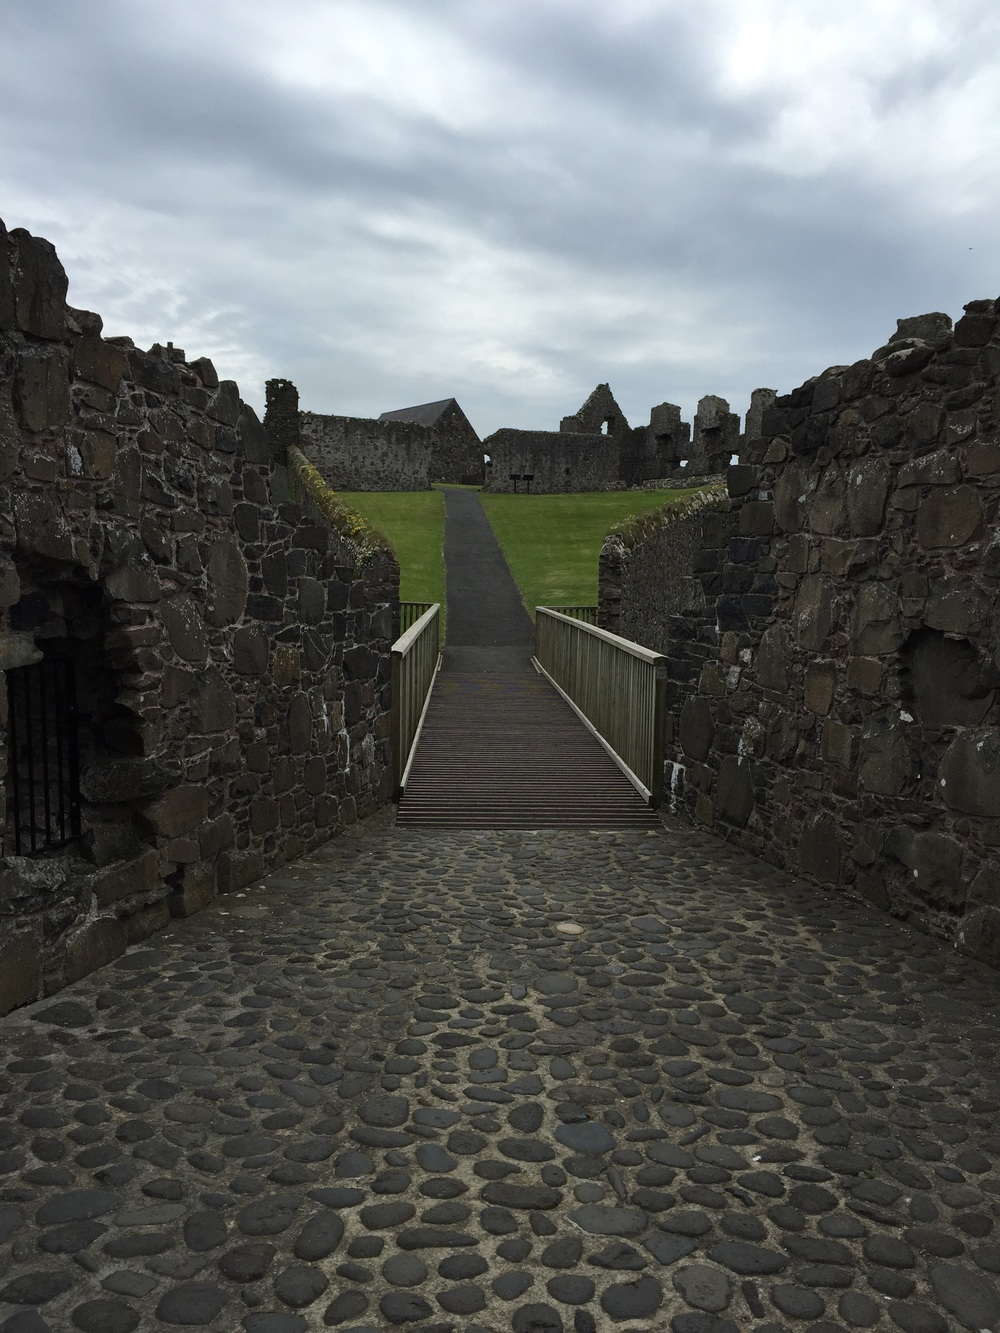 Bridge, looking back towards the keep and stables.